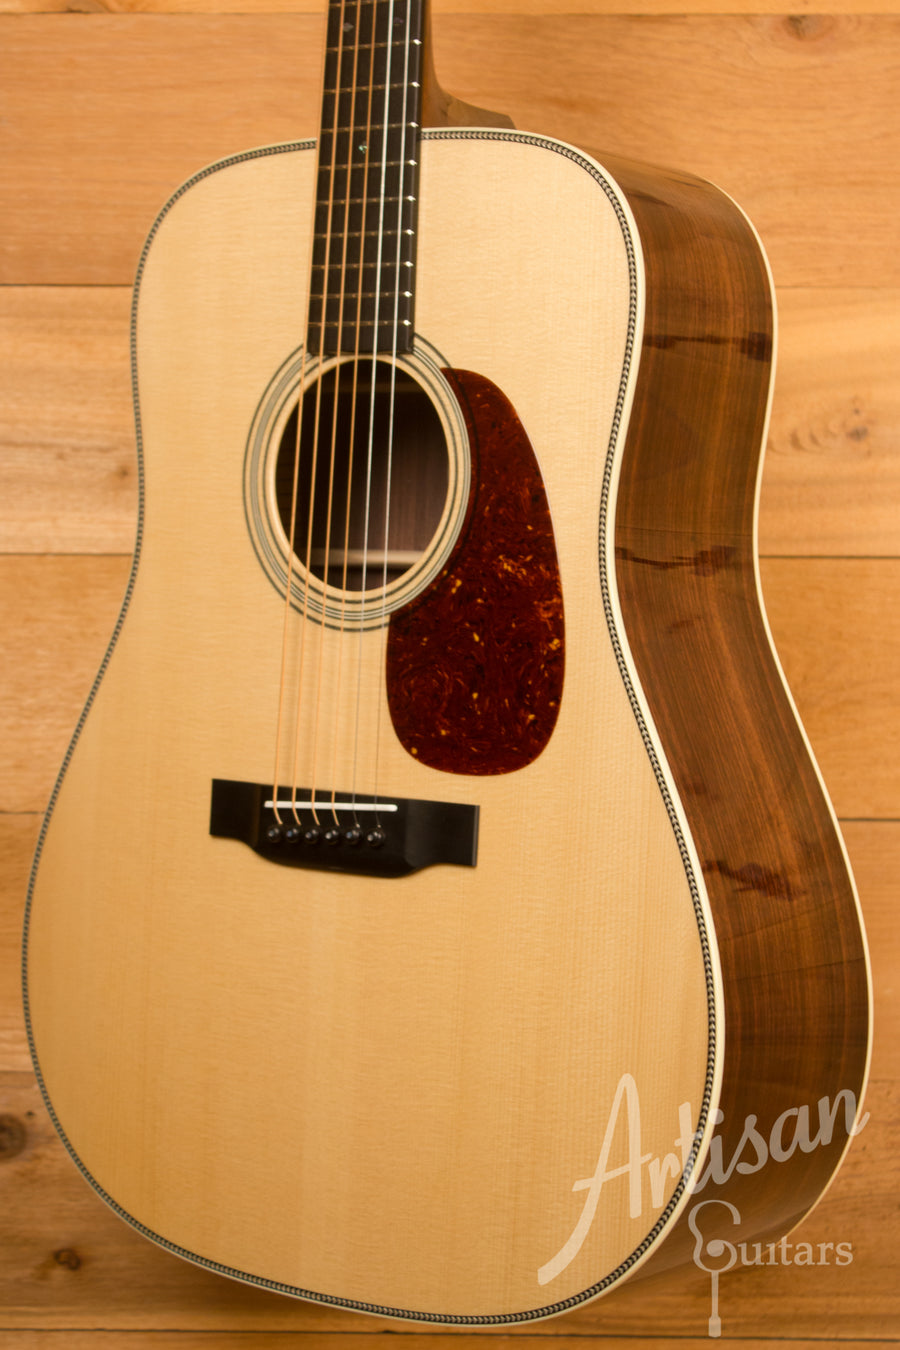 Collings D2HA Adirondack Spruce and Indian Rosewood with Flourish Inlay ID-11544 - Artisan Guitars